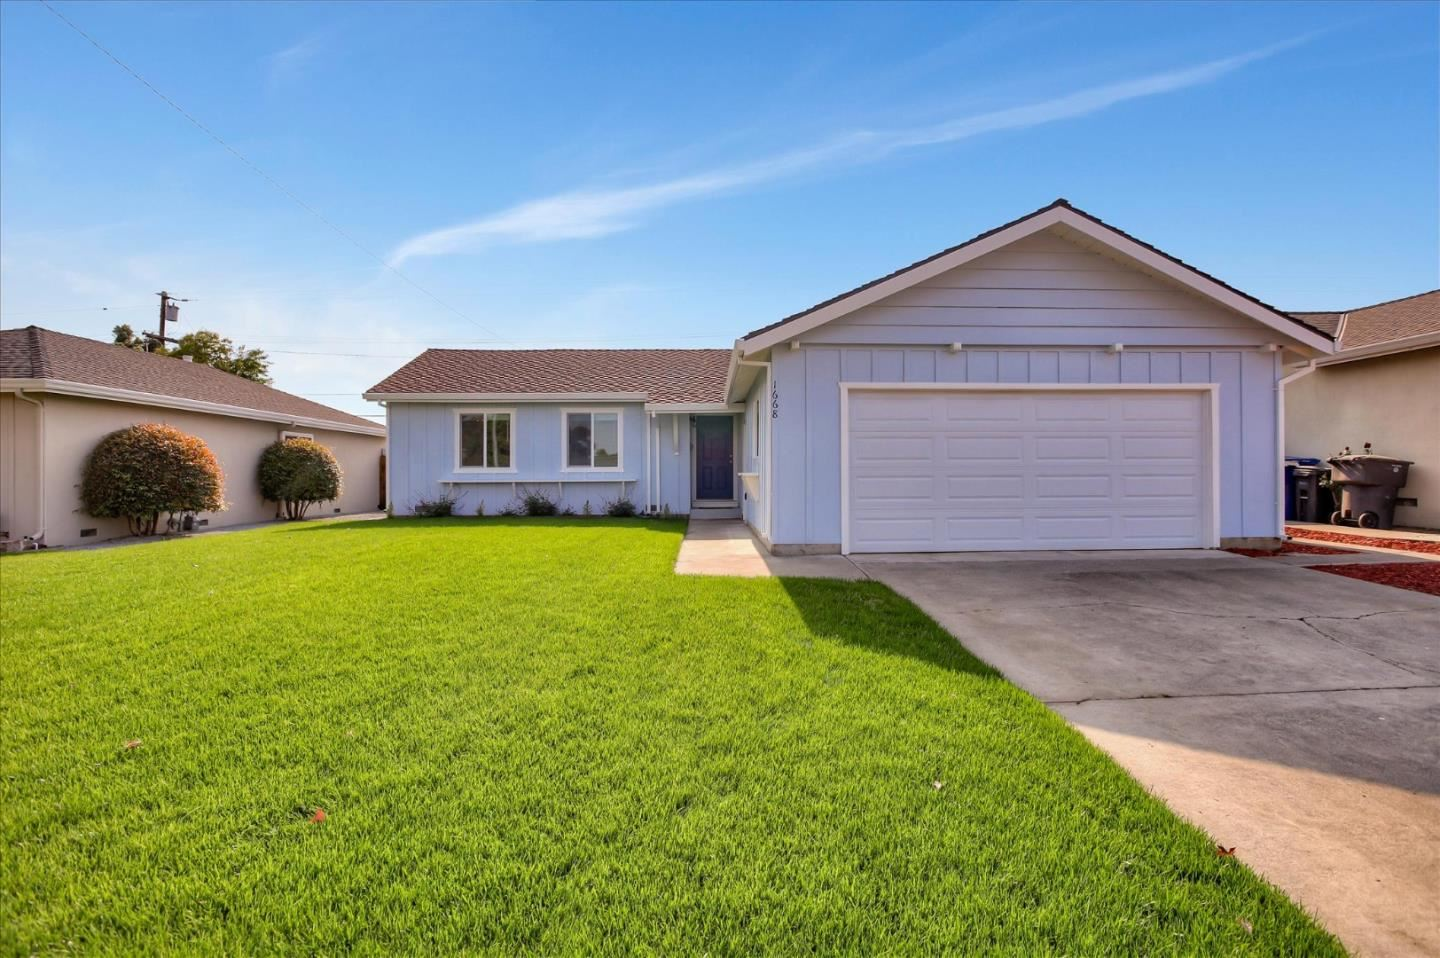 Photo for 1668 Castro DR, CAMPBELL, CA 95008 (MLS # ML81813244)